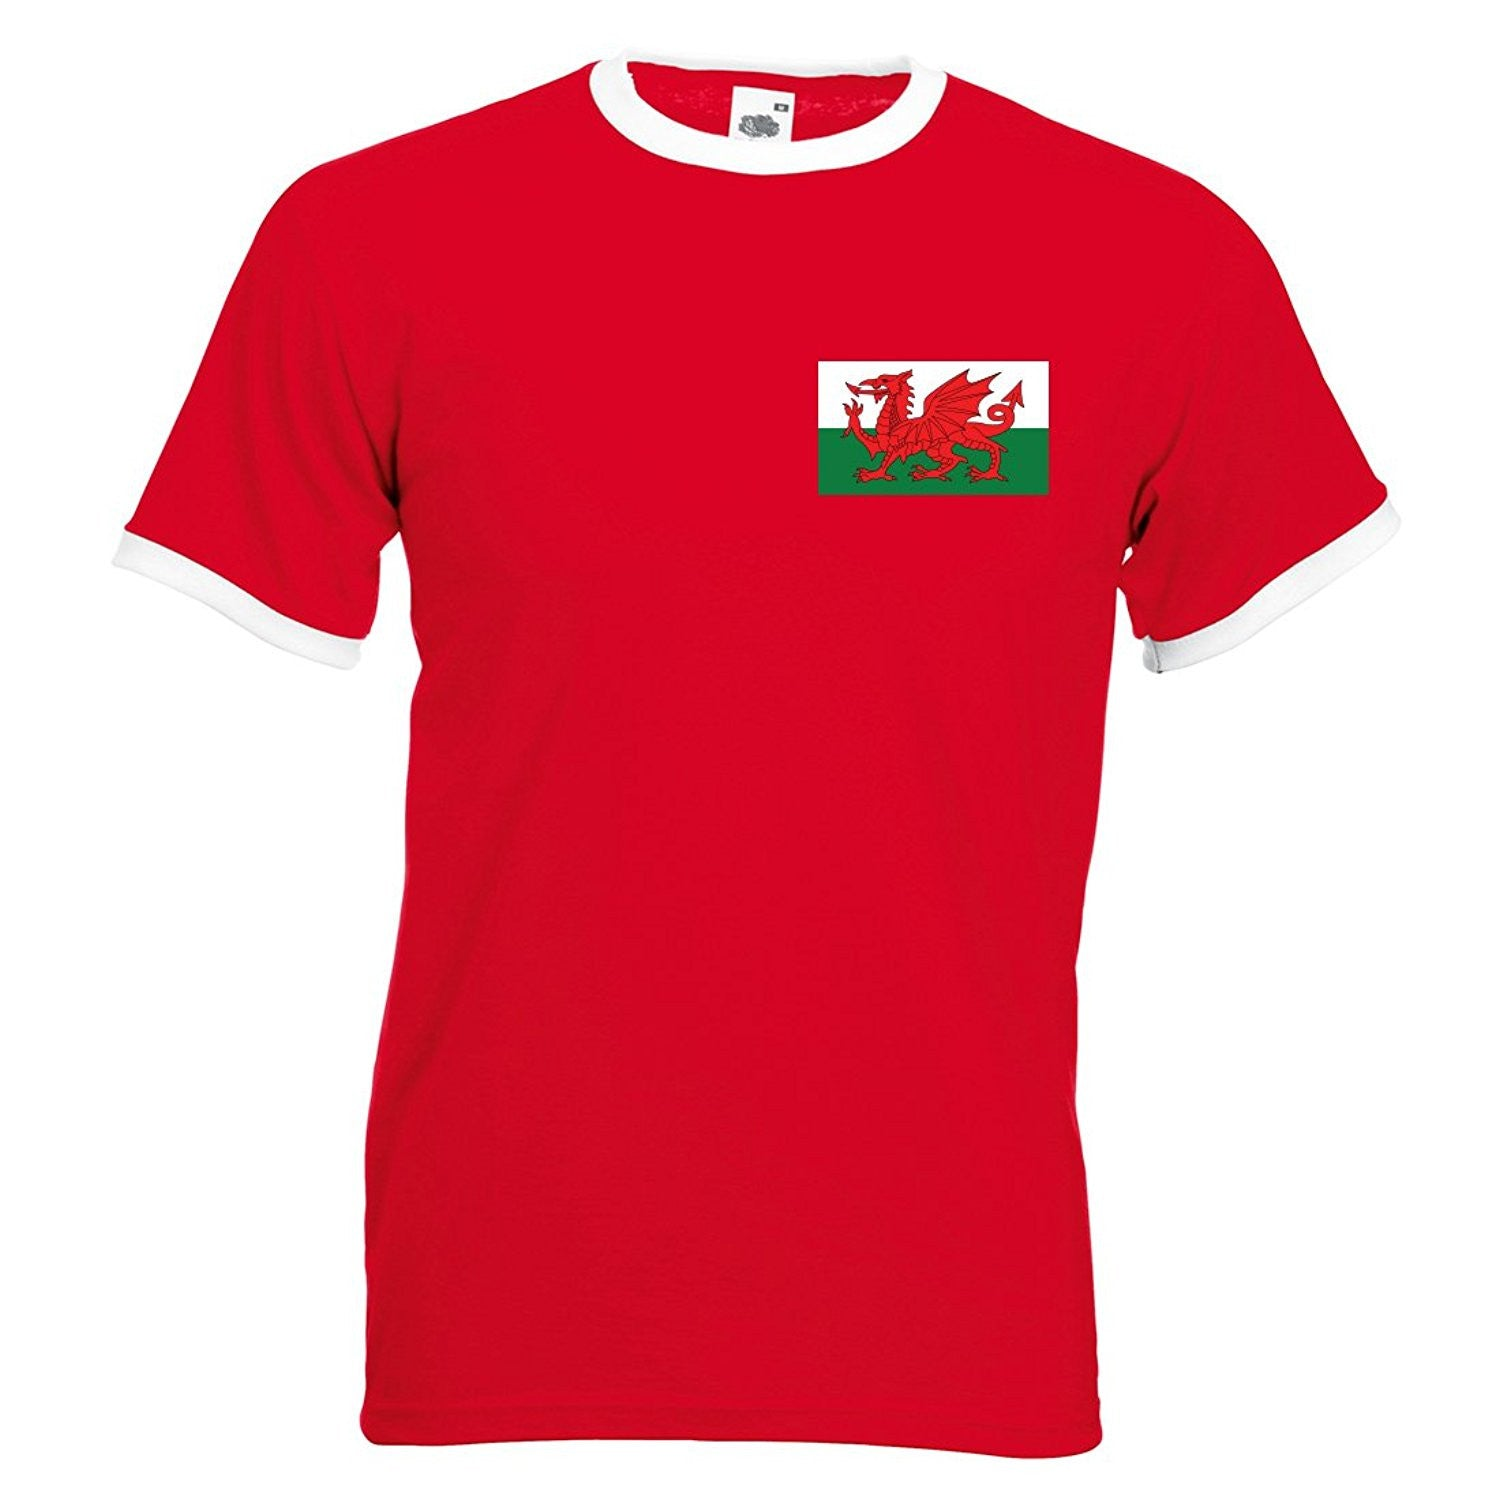 Adults Wales Welsh Cymru Embroidered Retro Football T-Shirt with Free Personalisation - Red / White LgCkg3Q